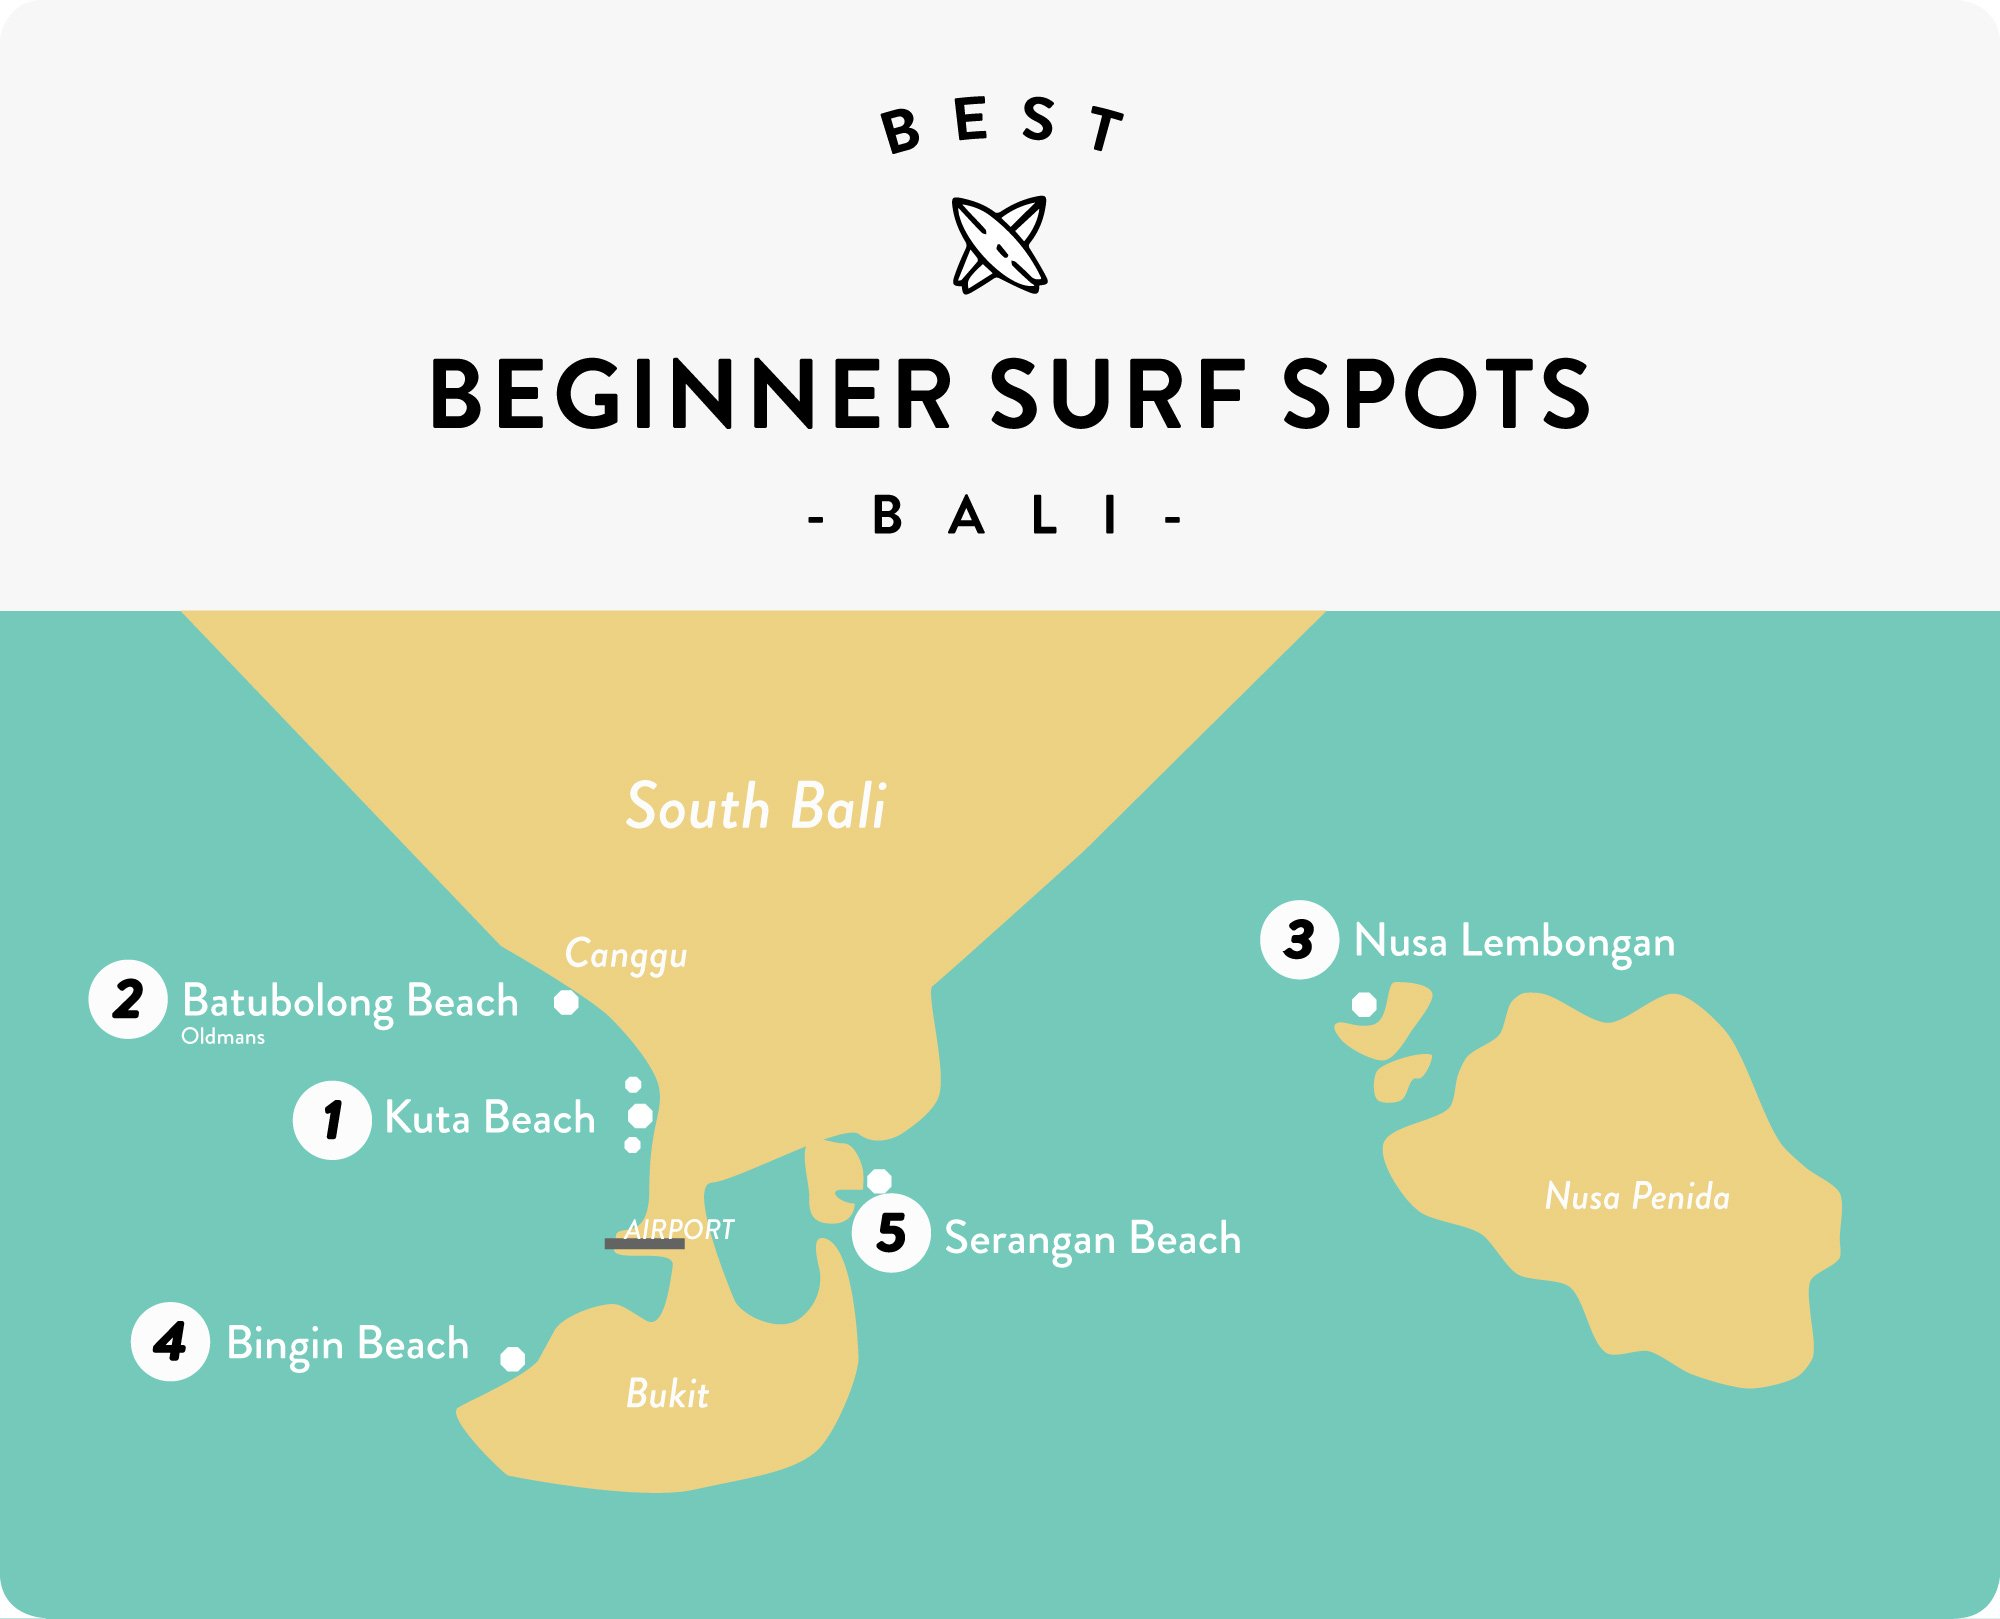 Bali-Beginner-Surf-Spots-Map